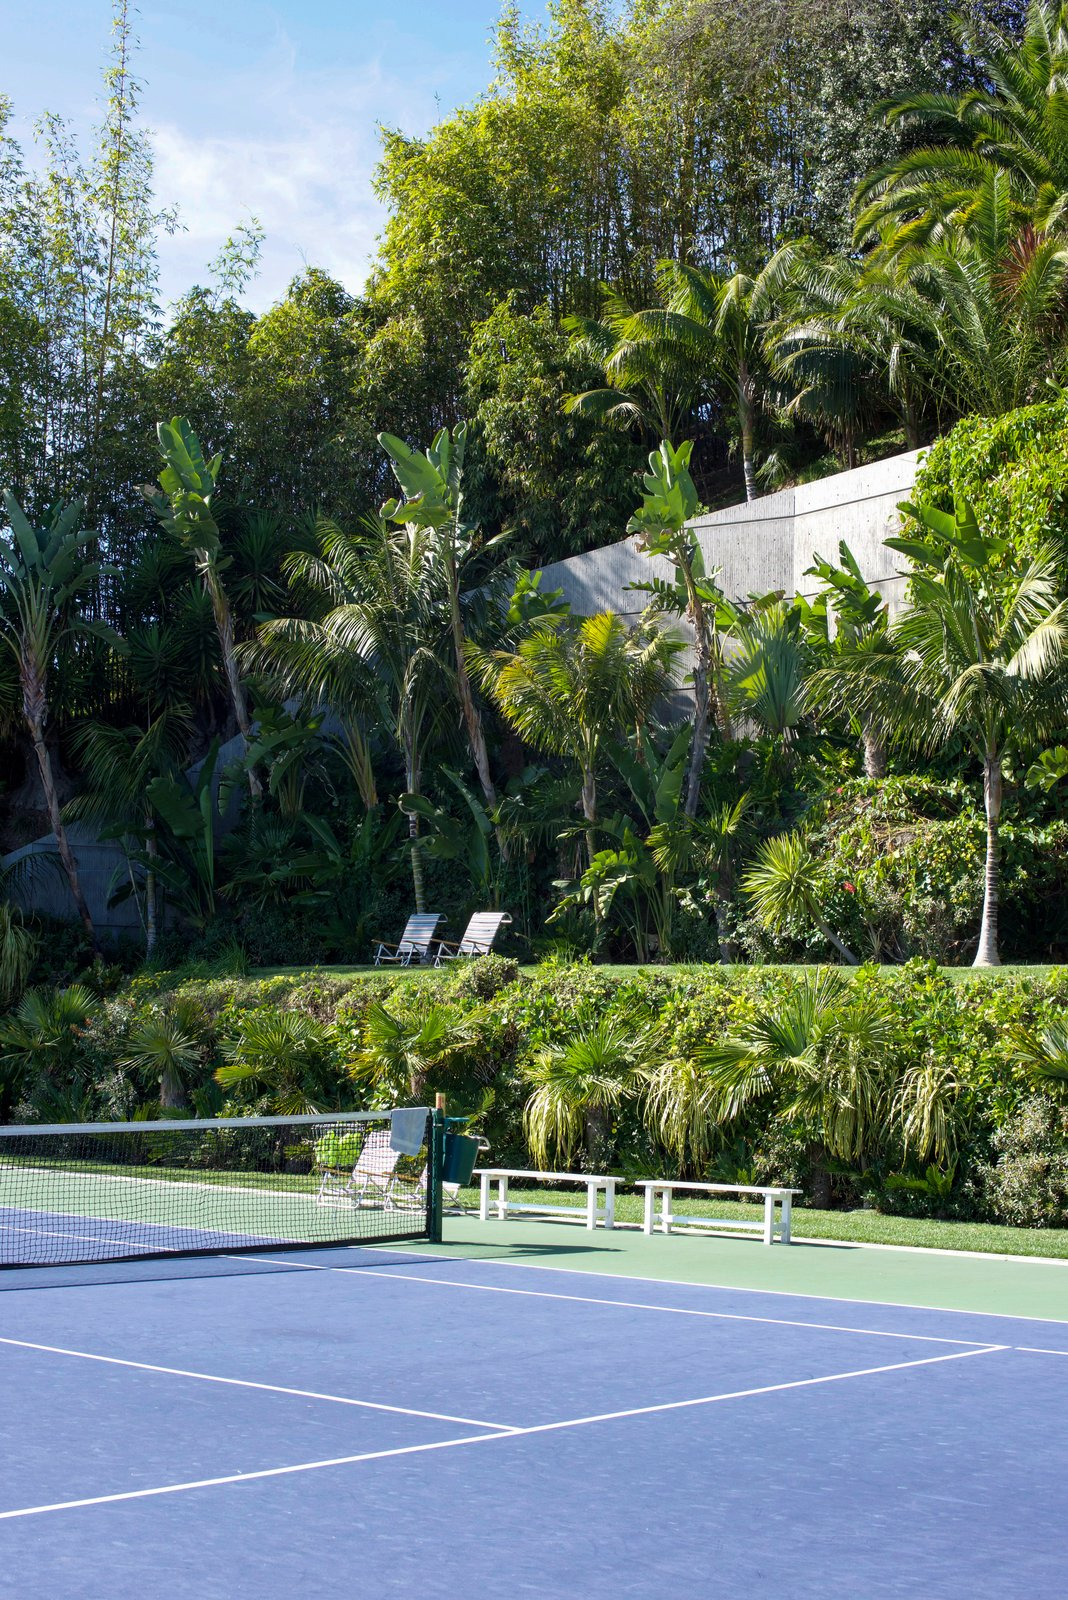 Goldstein's jungle extends over four acres of the property and lines the infinity tennis court.  Behind the Scenes at John Lautner's Sheats-Goldstein Residence by Paige Alexus